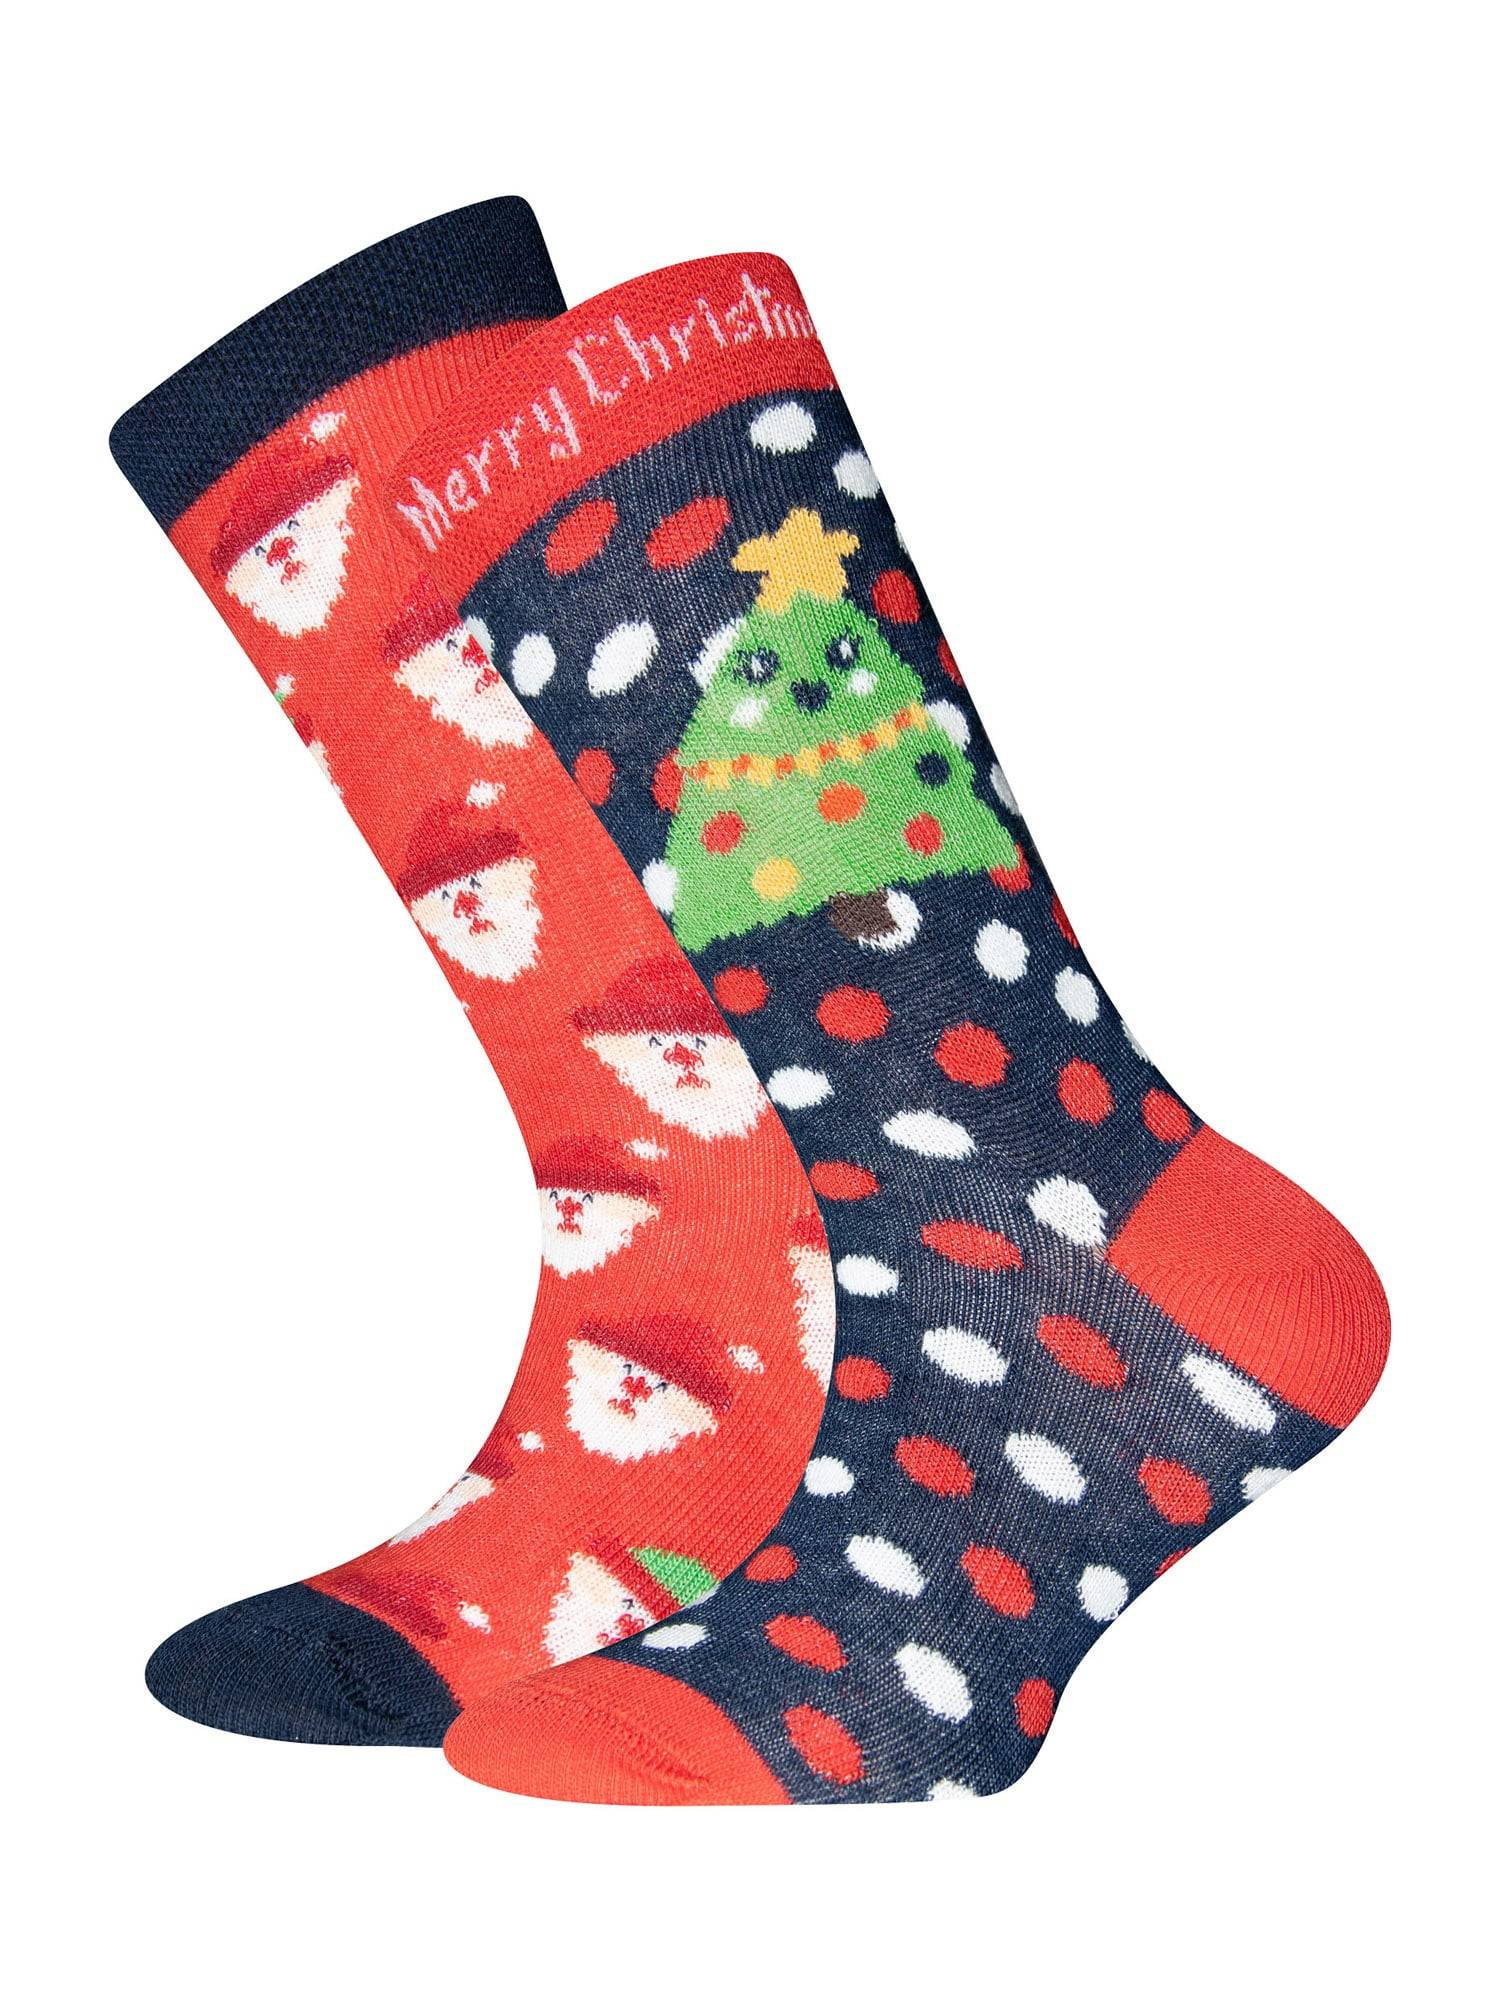 EWERS Chaussettes  - Bleu, Rouge - Taille: 27-30 - boy